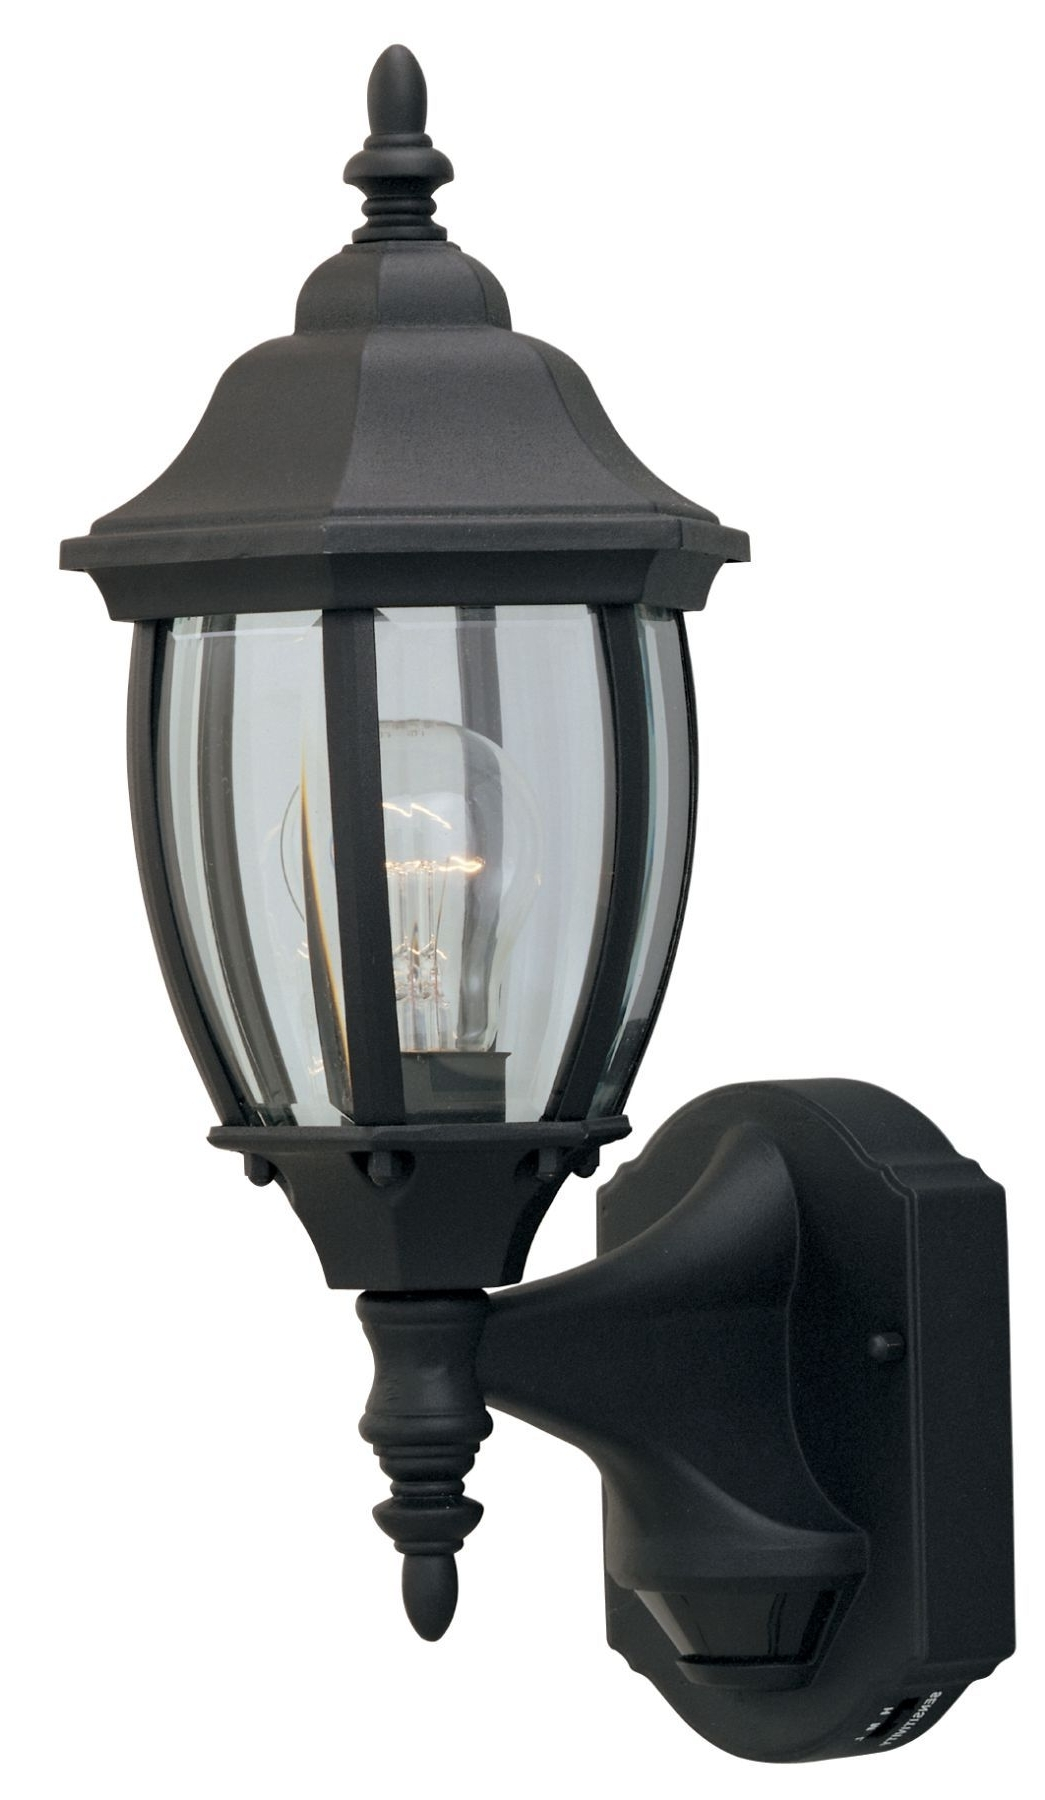 2019 Outdoor Wall Mounted Decorative Lighting Throughout Uncategorized (View 2 of 20)